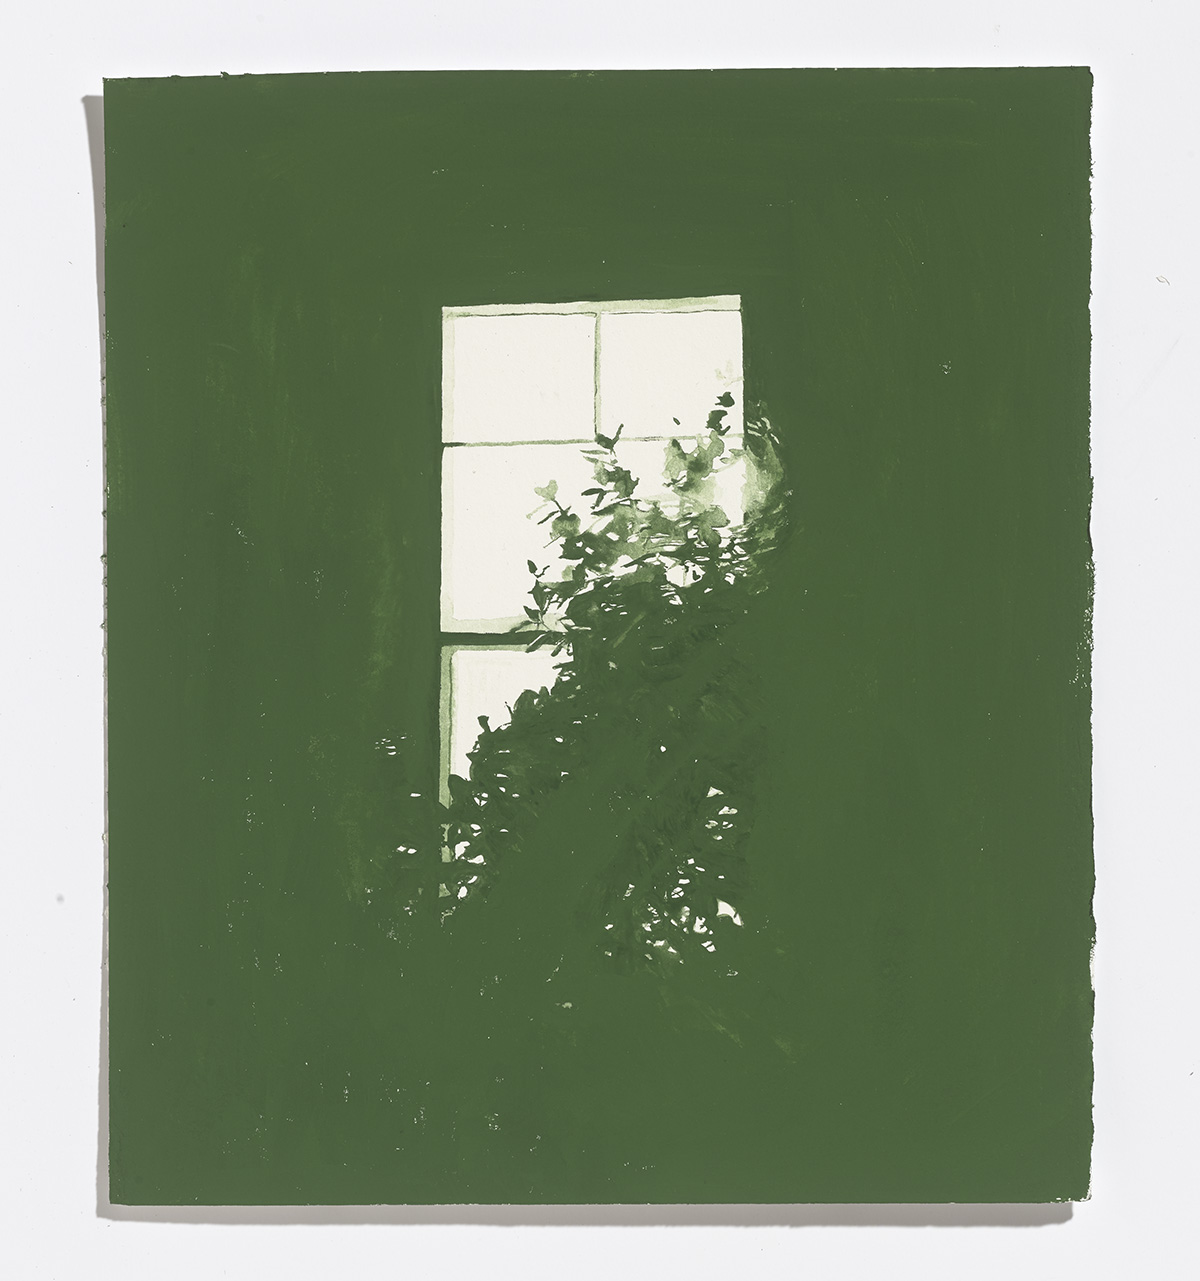 Green Window, 2017, watercolour on paper,10.25 x 9 in.$1300 CAD $1100 USD